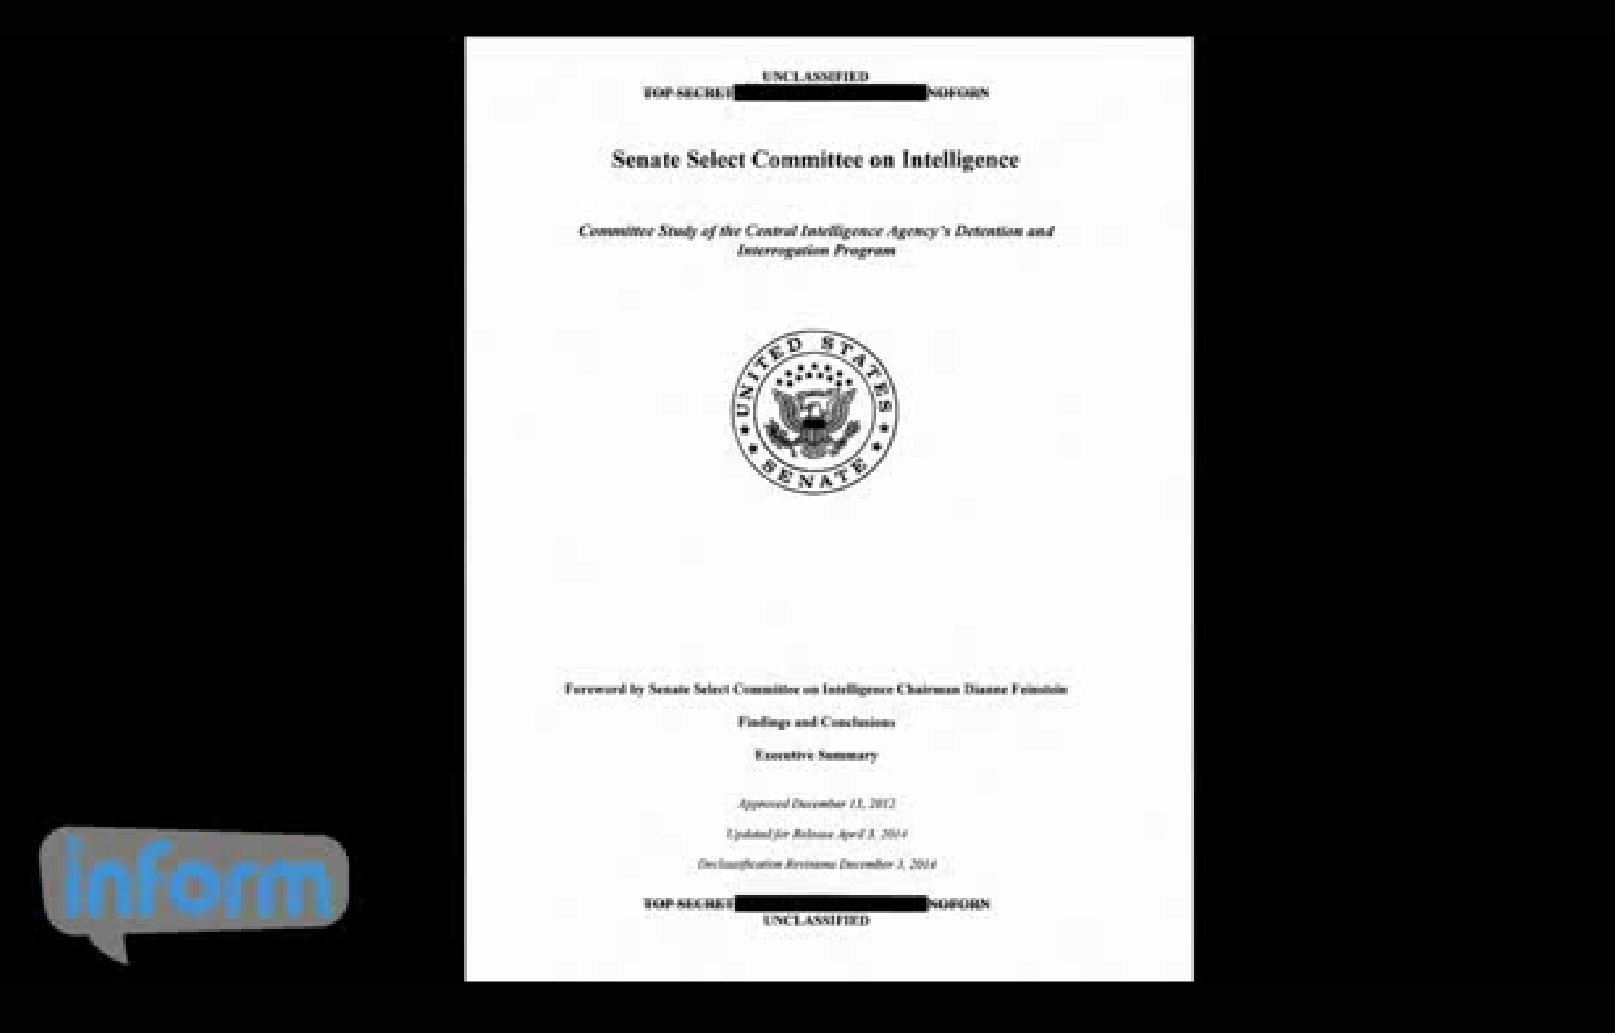 The issue of the use of torture by the cia in the early 2000s